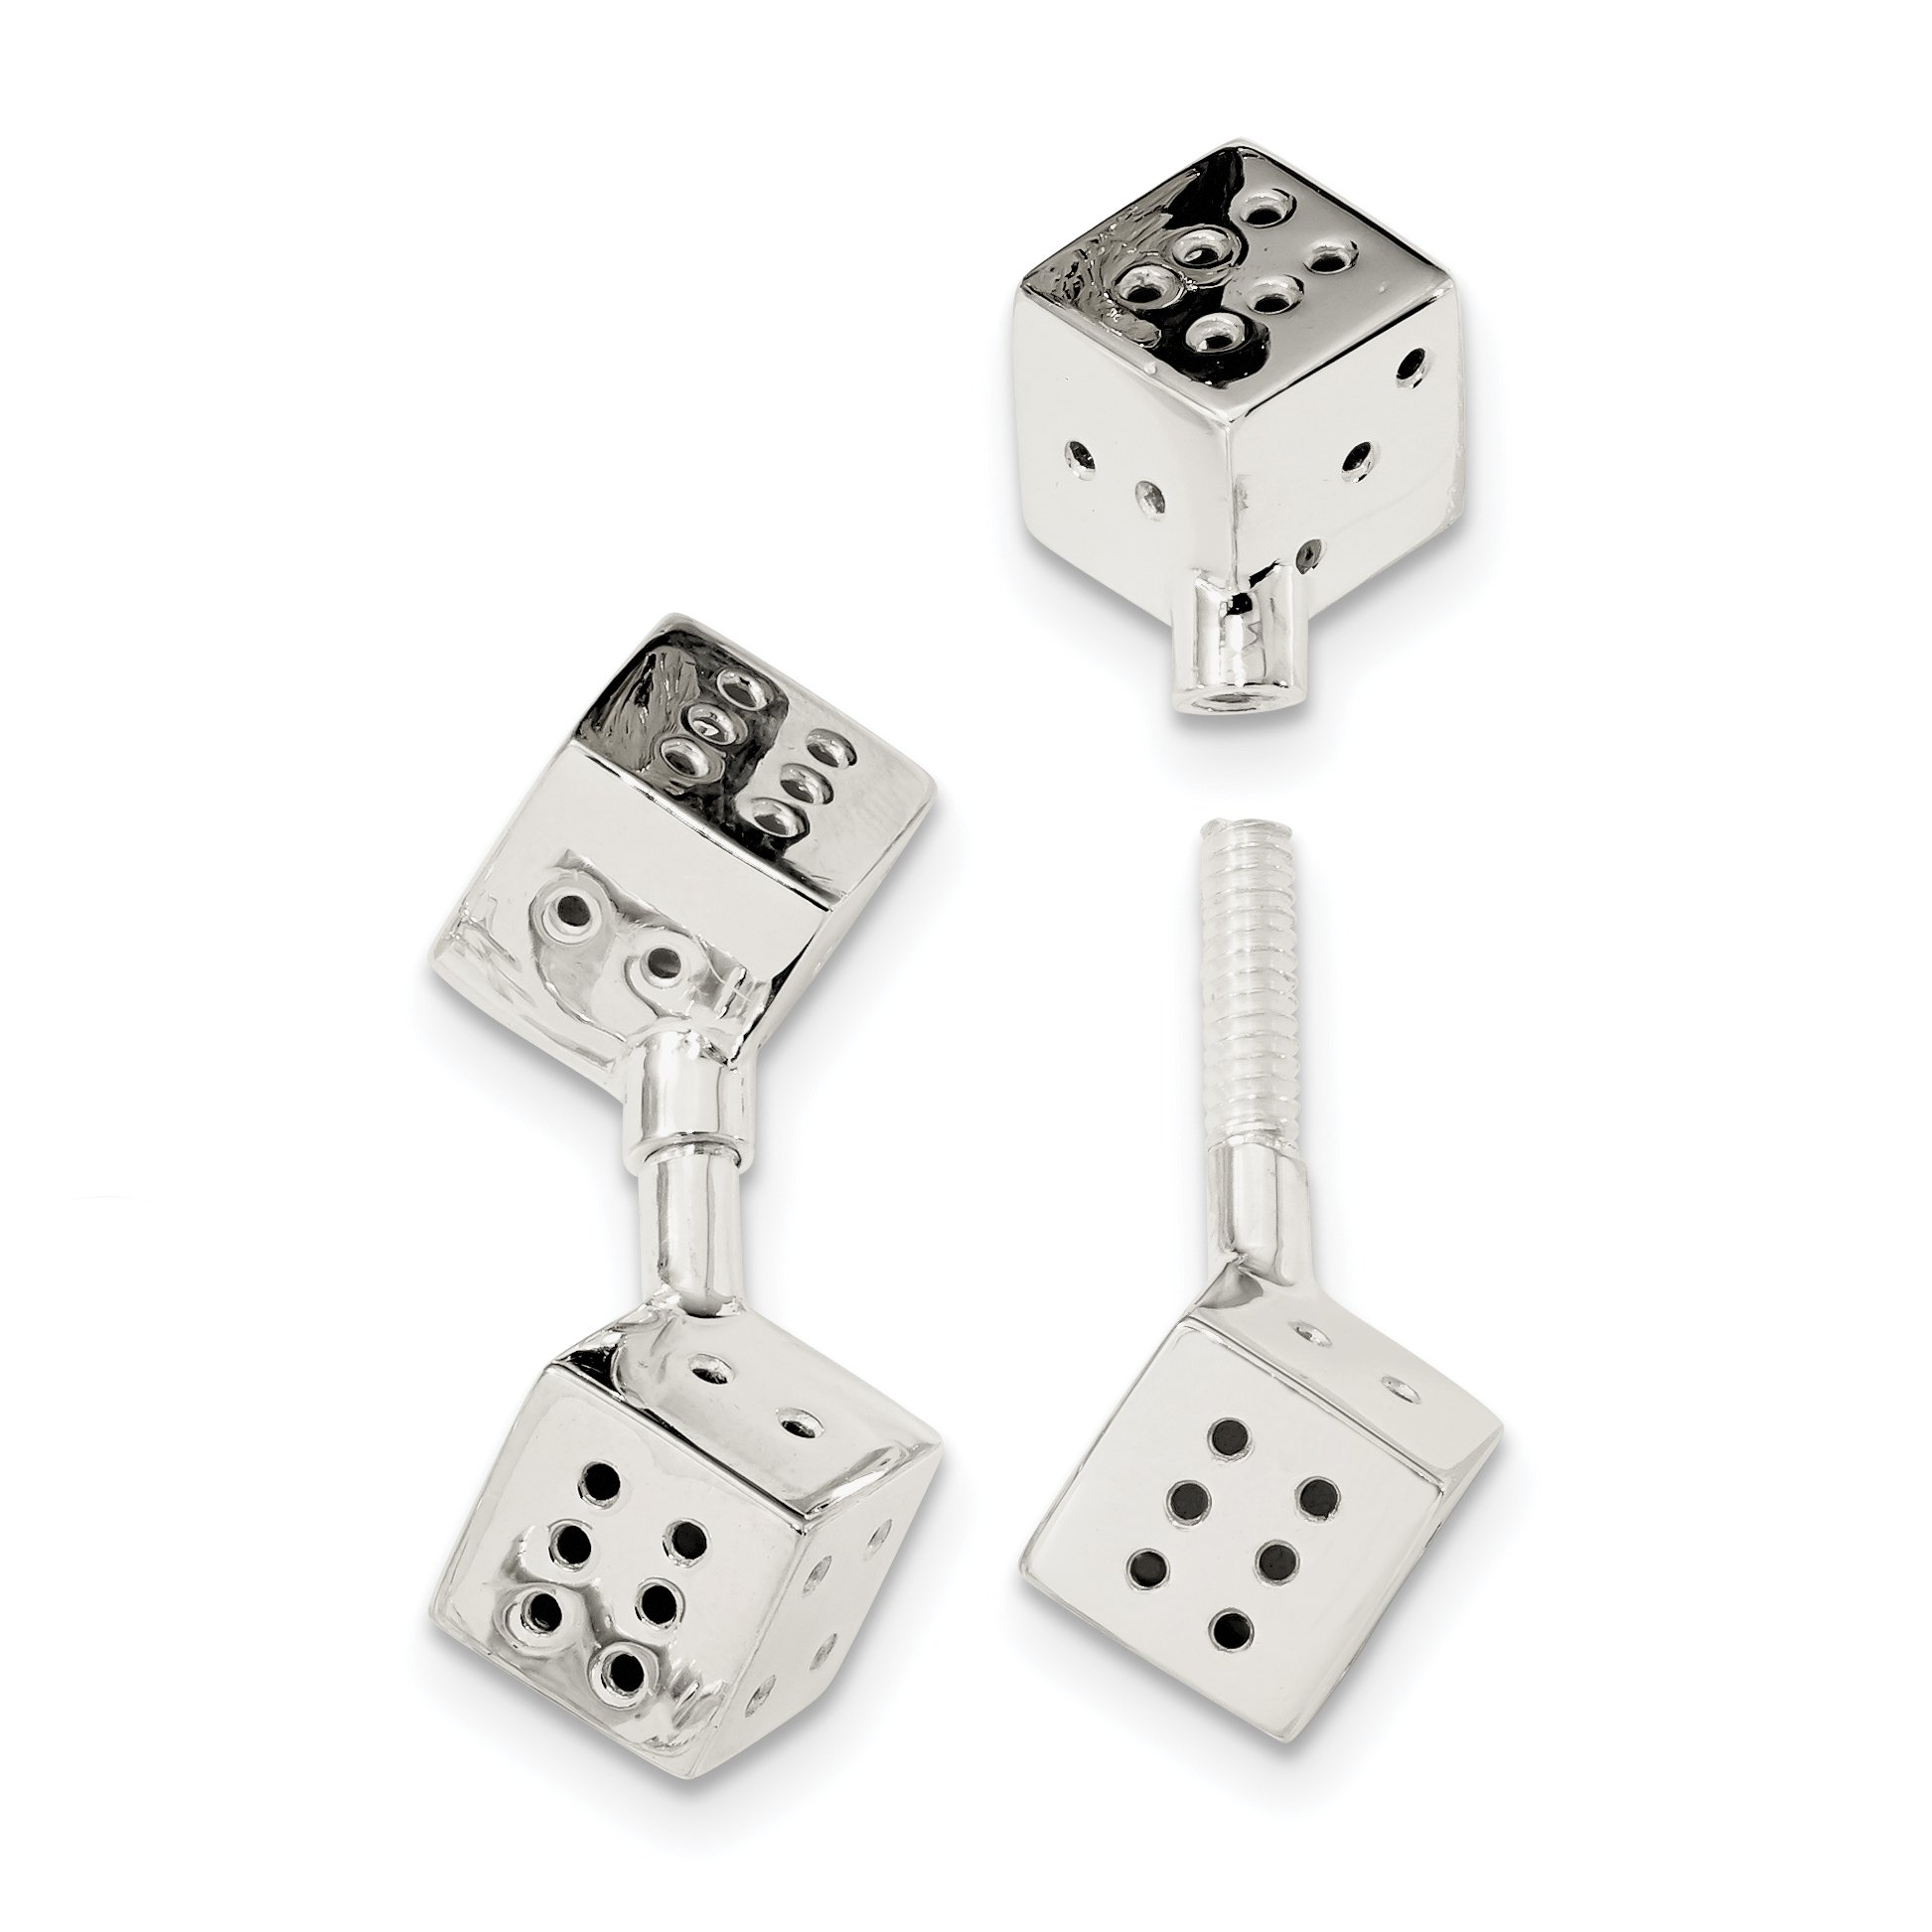 ICE CARATS 925 Sterling Silver Screw On Dice Cuff Links Mens Cufflinks Link Fine Jewelry Dad Mens Gift Set